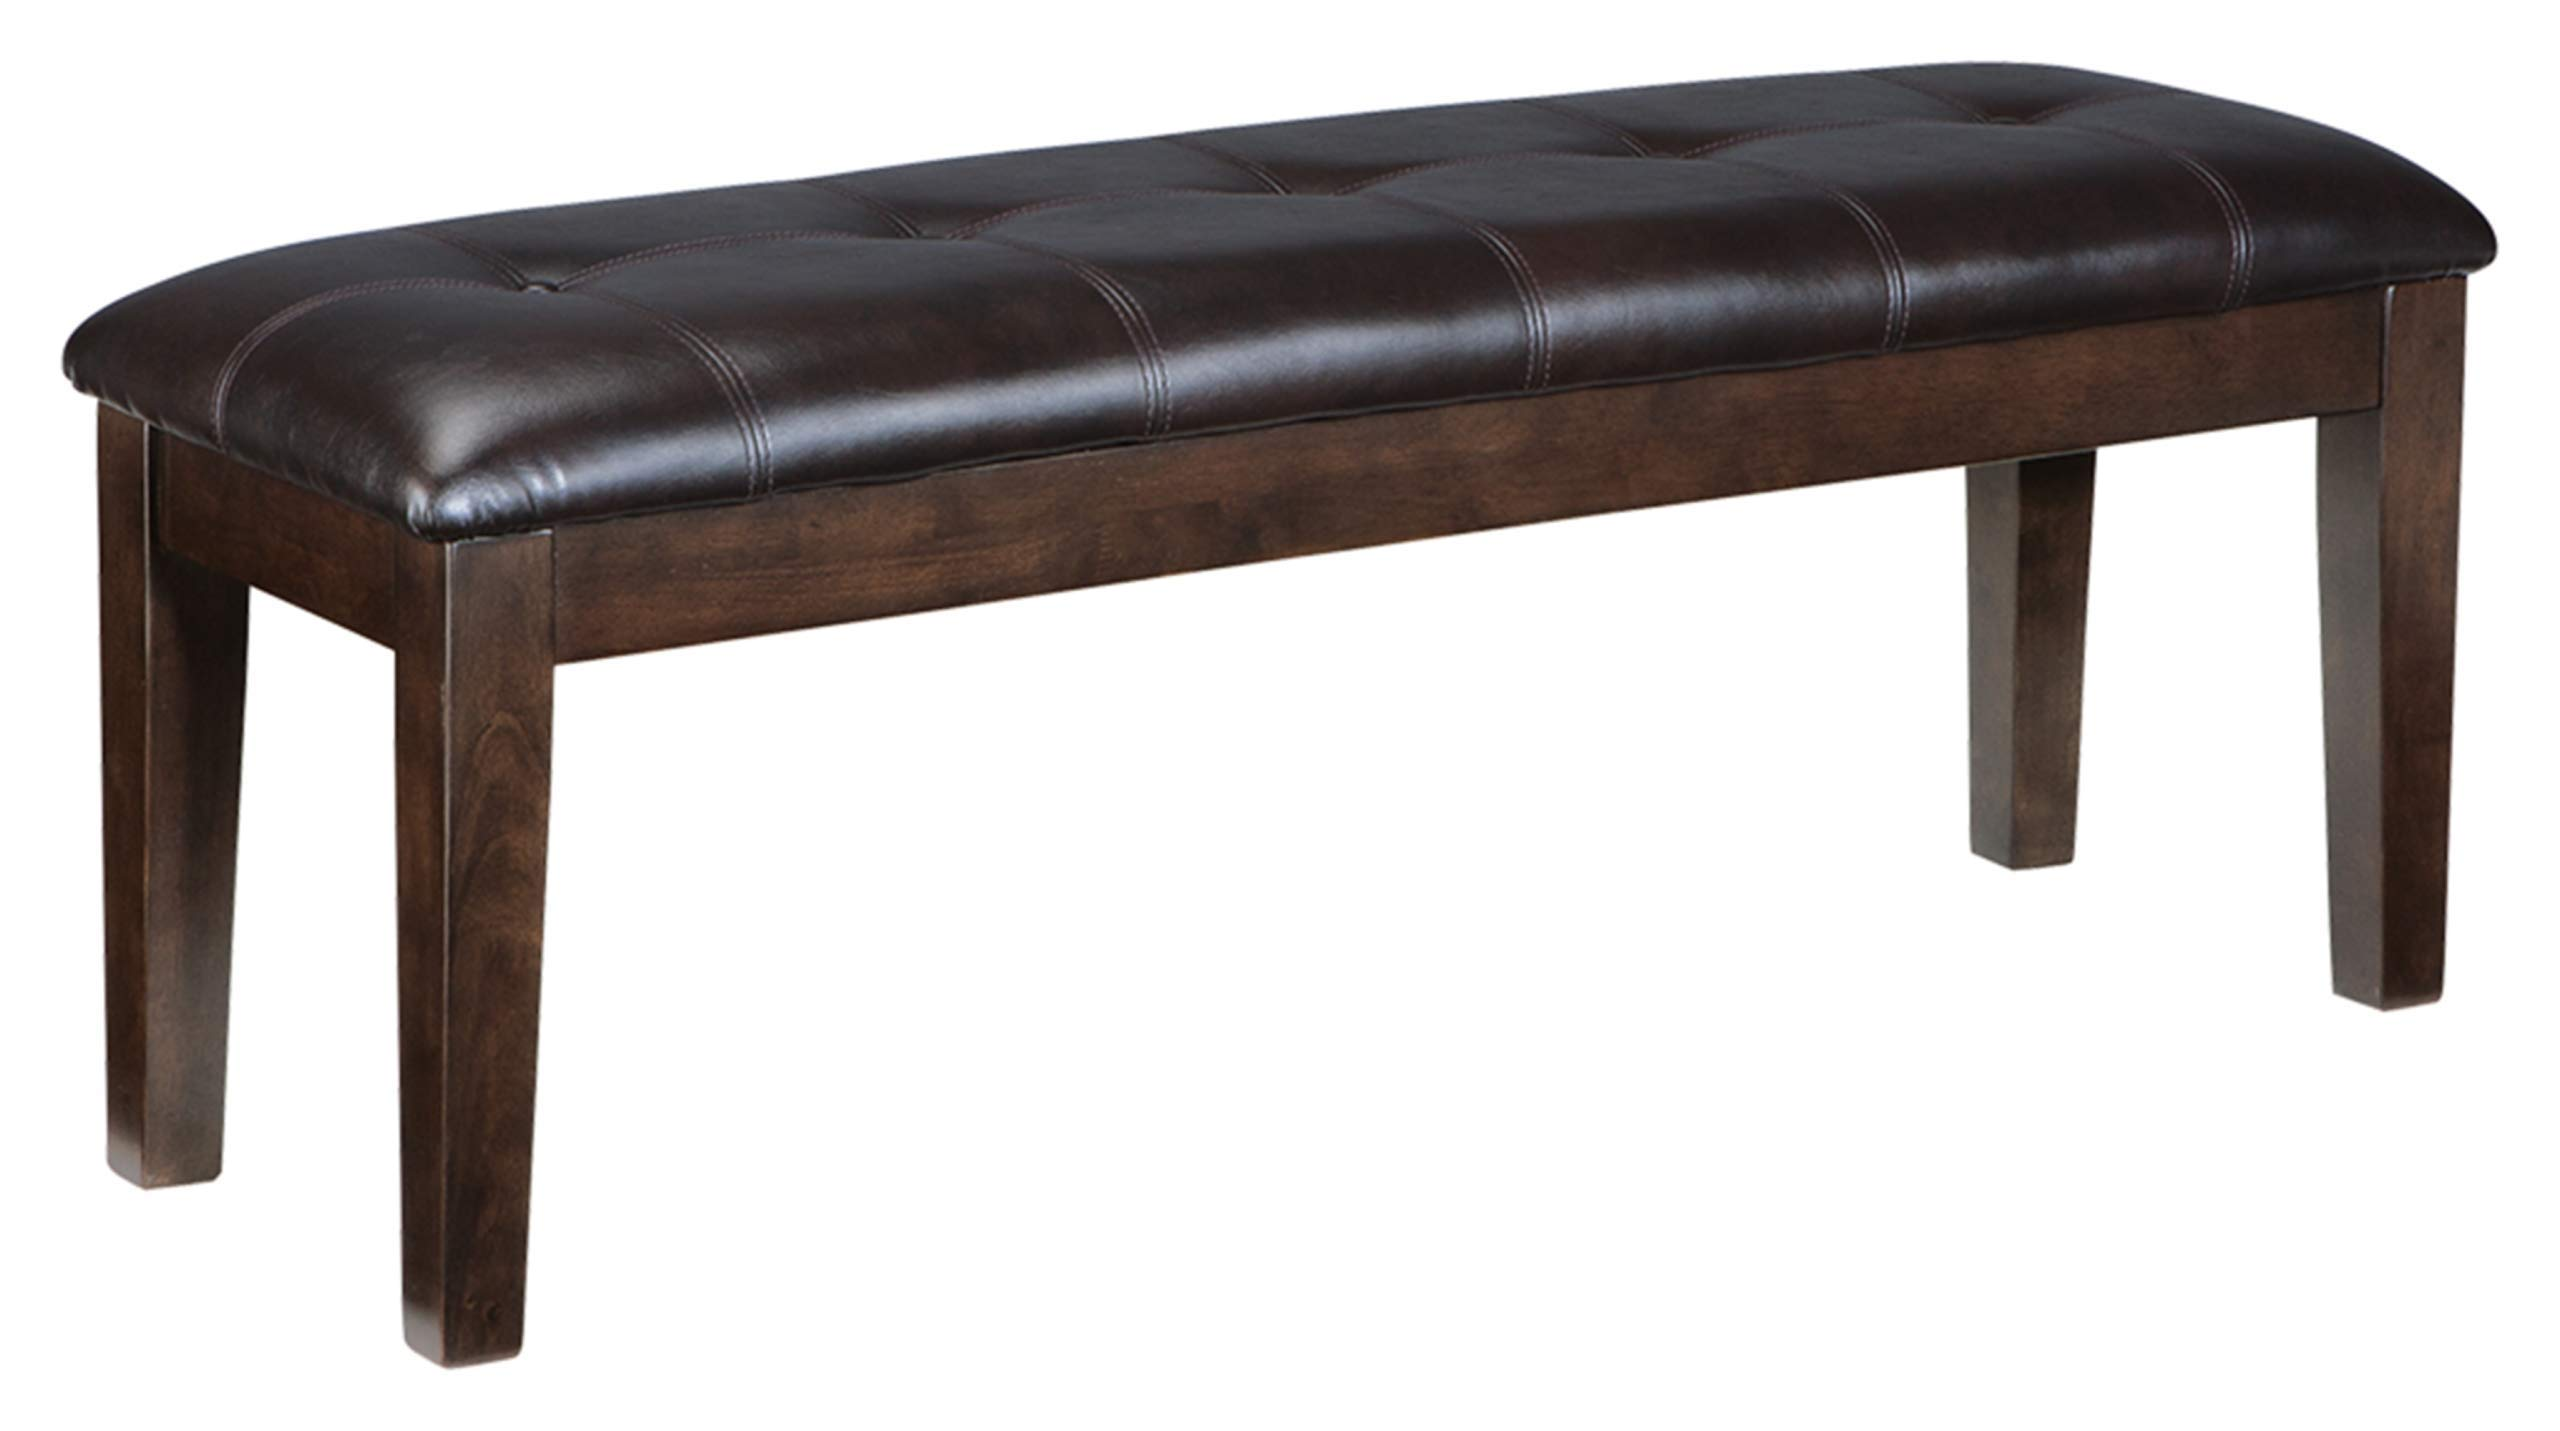 Ashley Furniture Signature Design - Haddigan Upholstered Dining Room Bench - Casual Tufted Seating - Dark Brown (Renewed) by Signature Design by Ashley